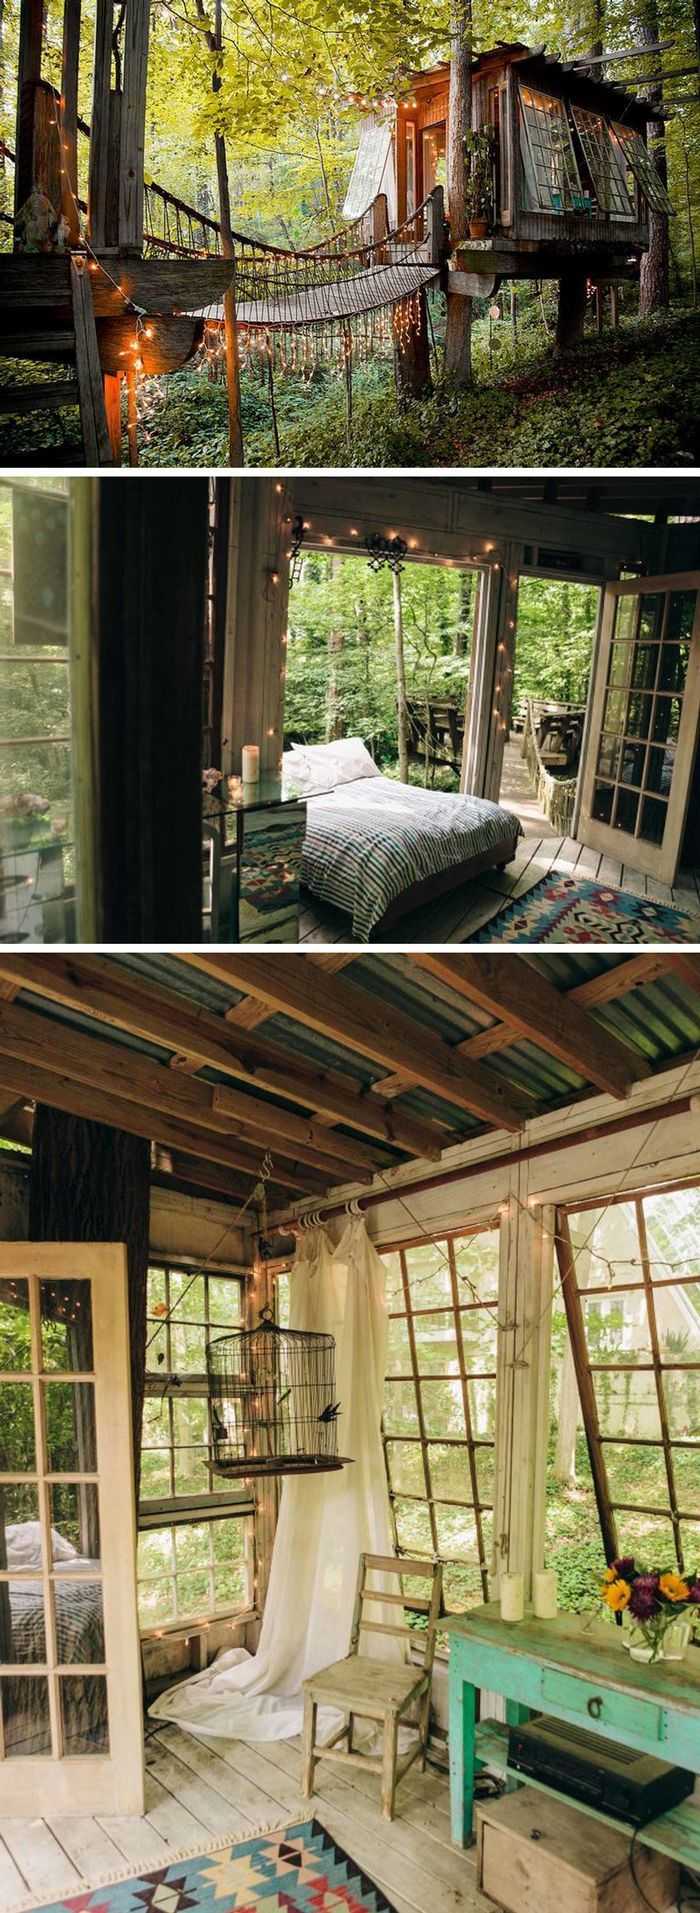 Rustic simplicity for a beautiful treehouse adventure